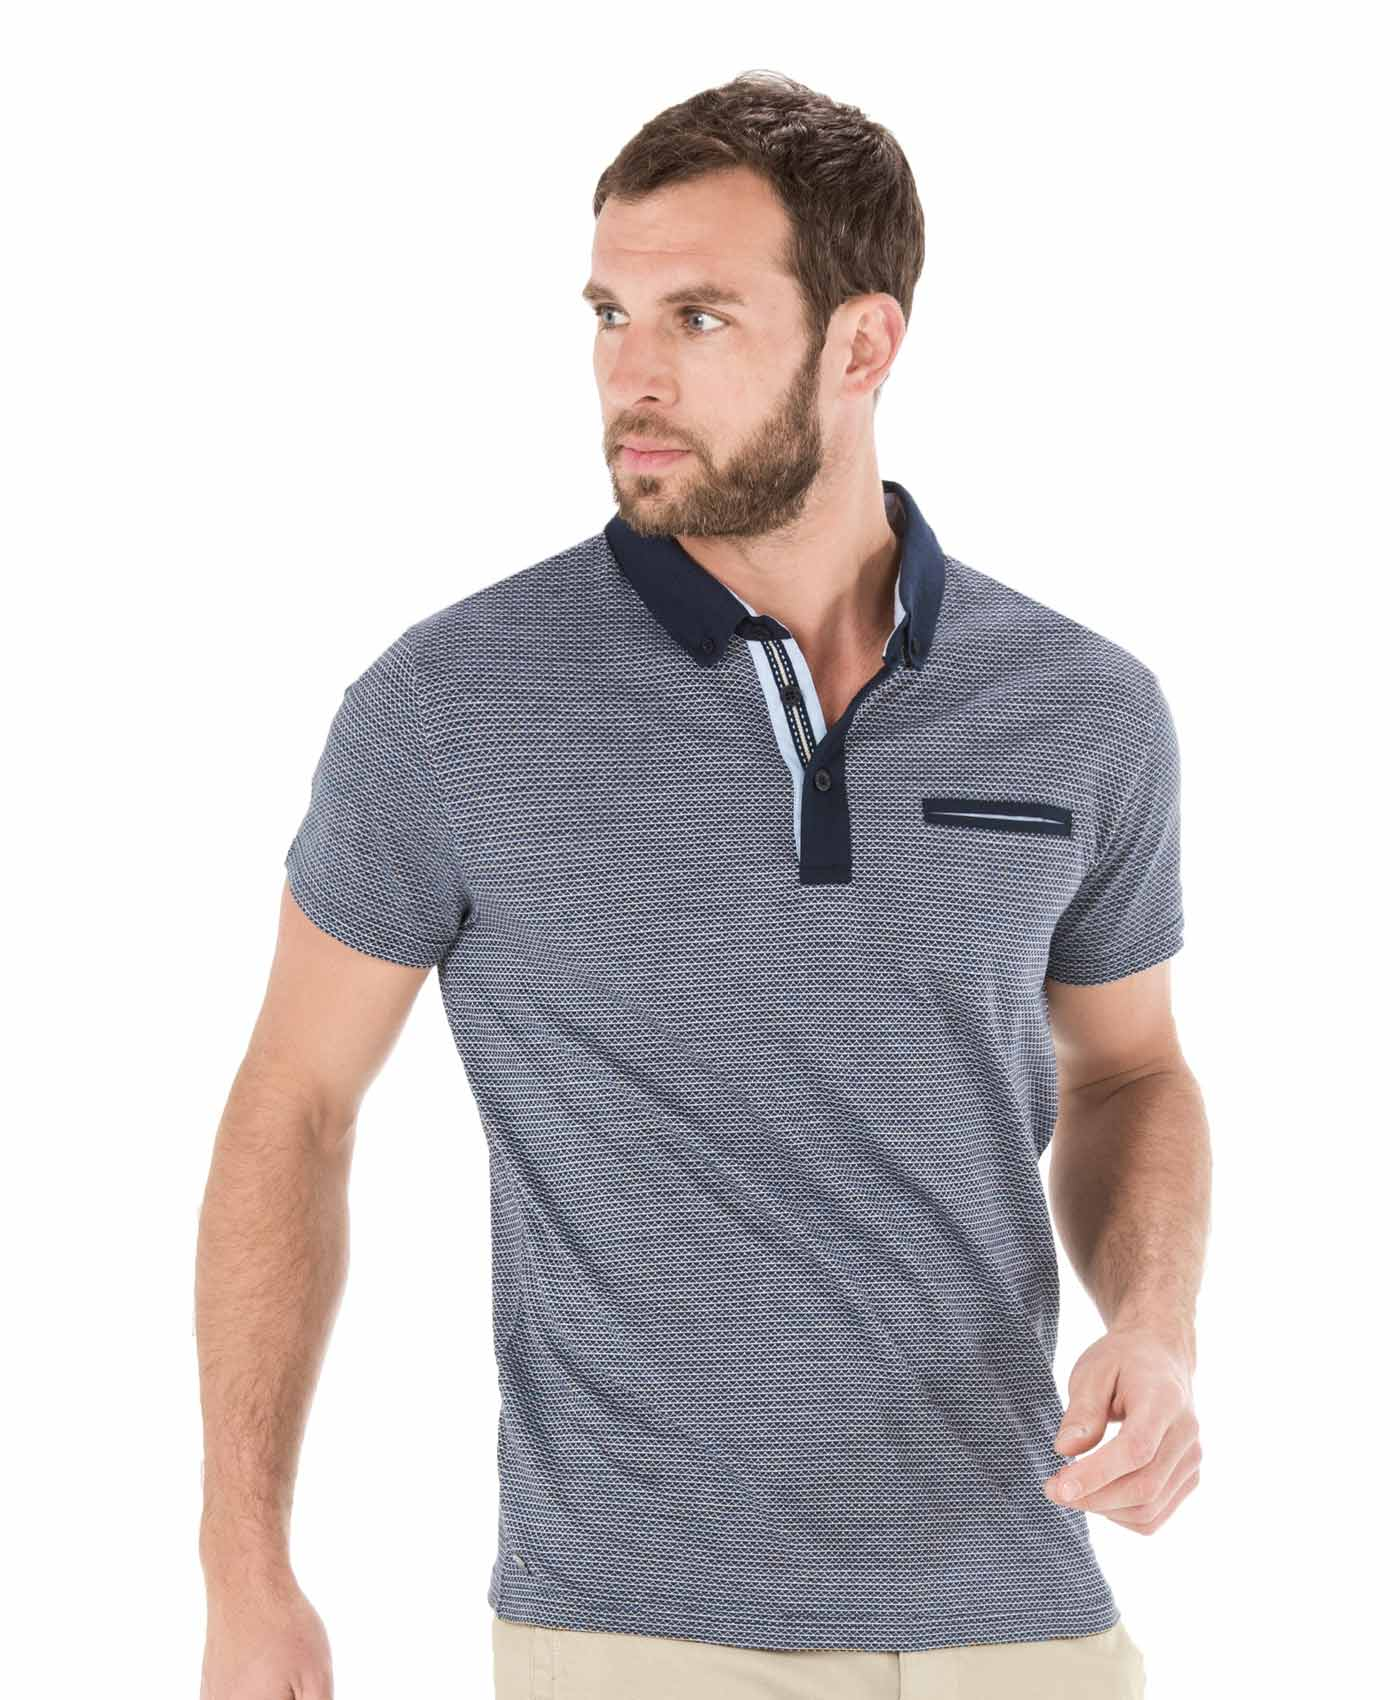 Polo manches courtes homme bleu nuit - Mode marine Homme